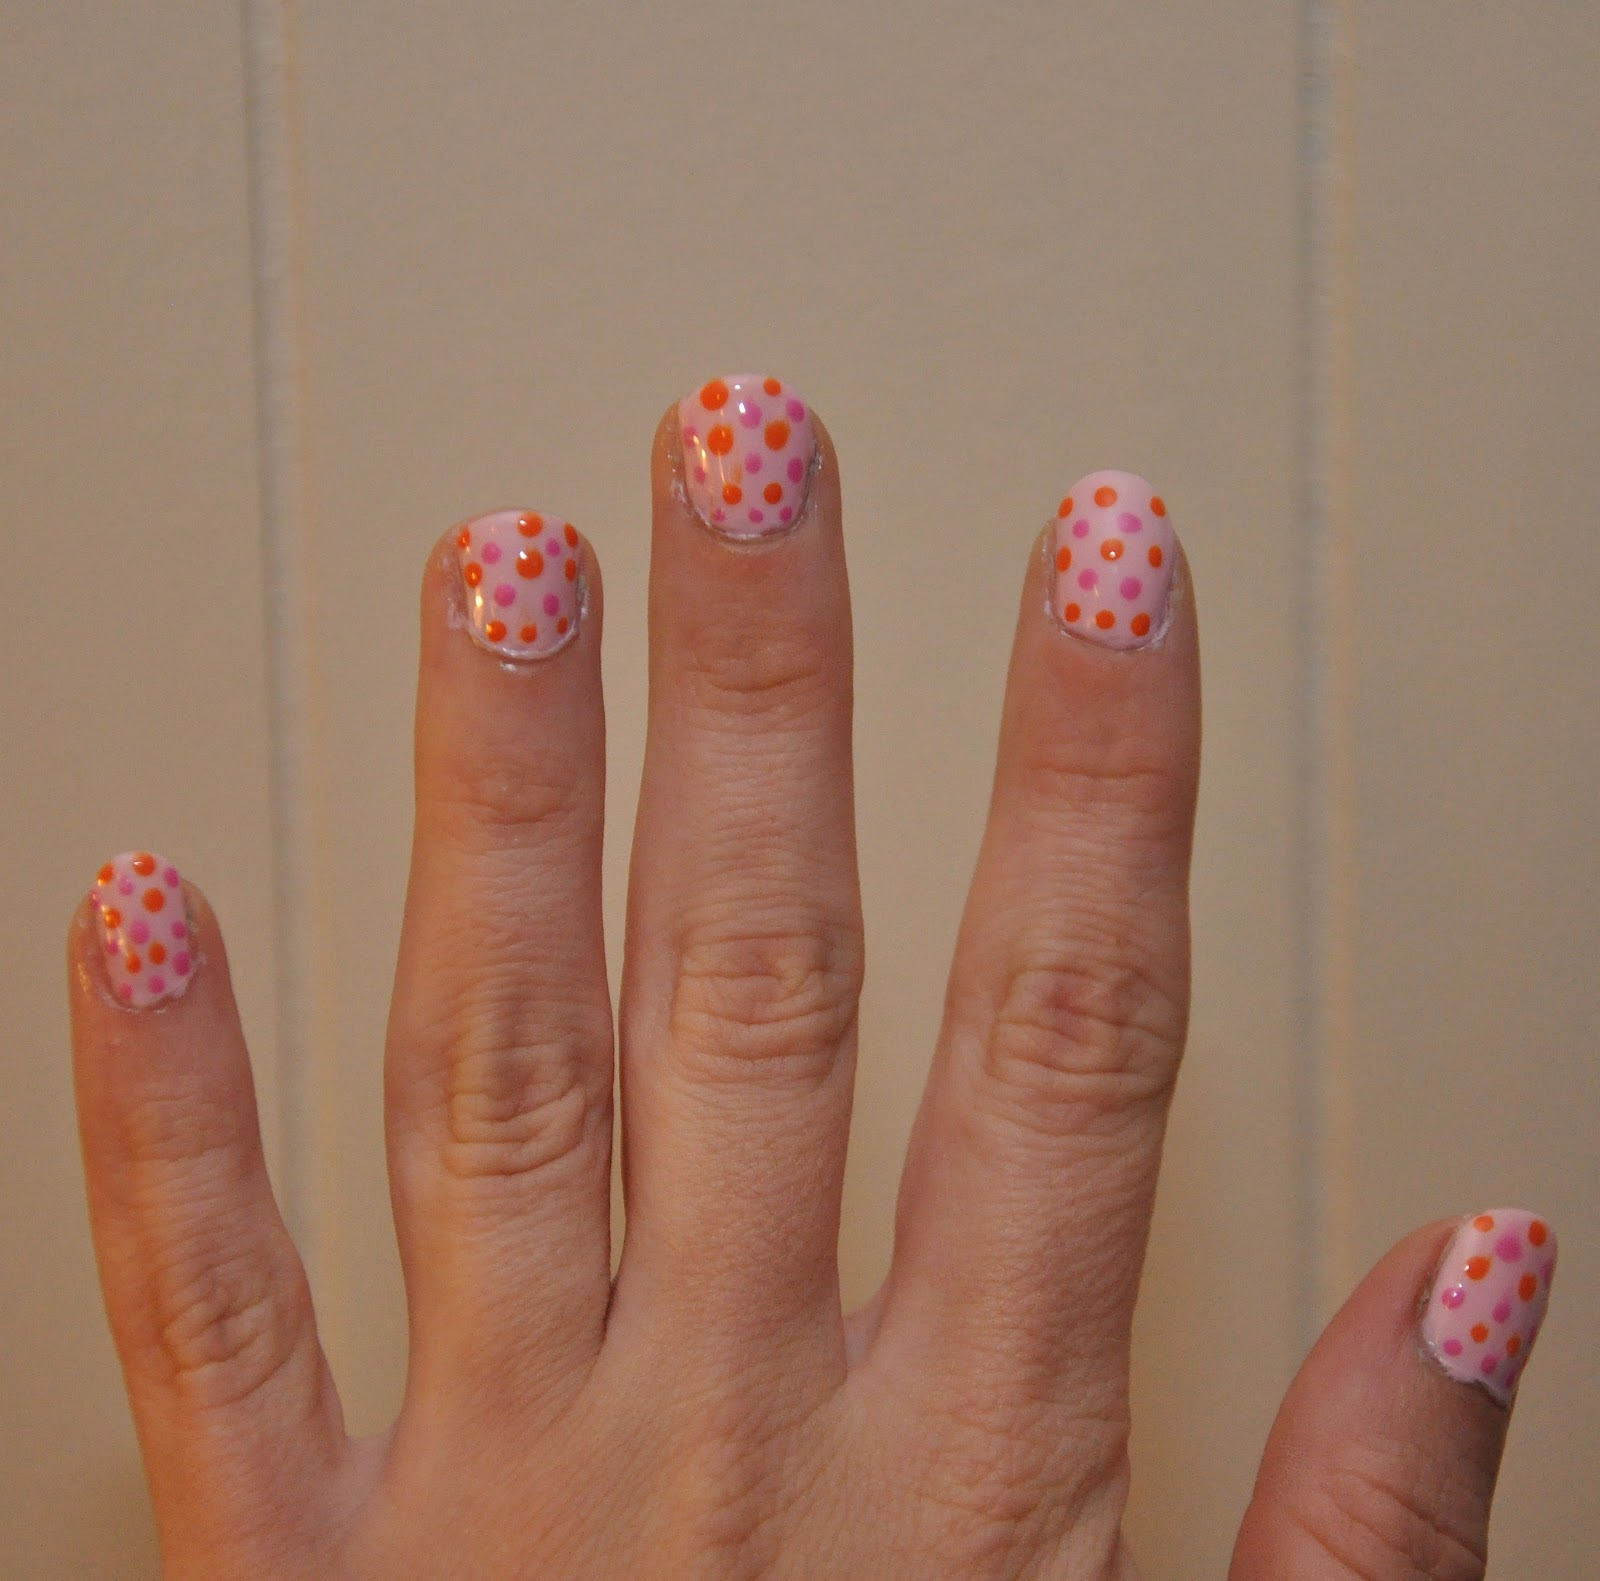 A Light Pink Base Coat With Bright Orange And Polka Dot Design The Works Perfectly My Colors Dots Couldnt Be